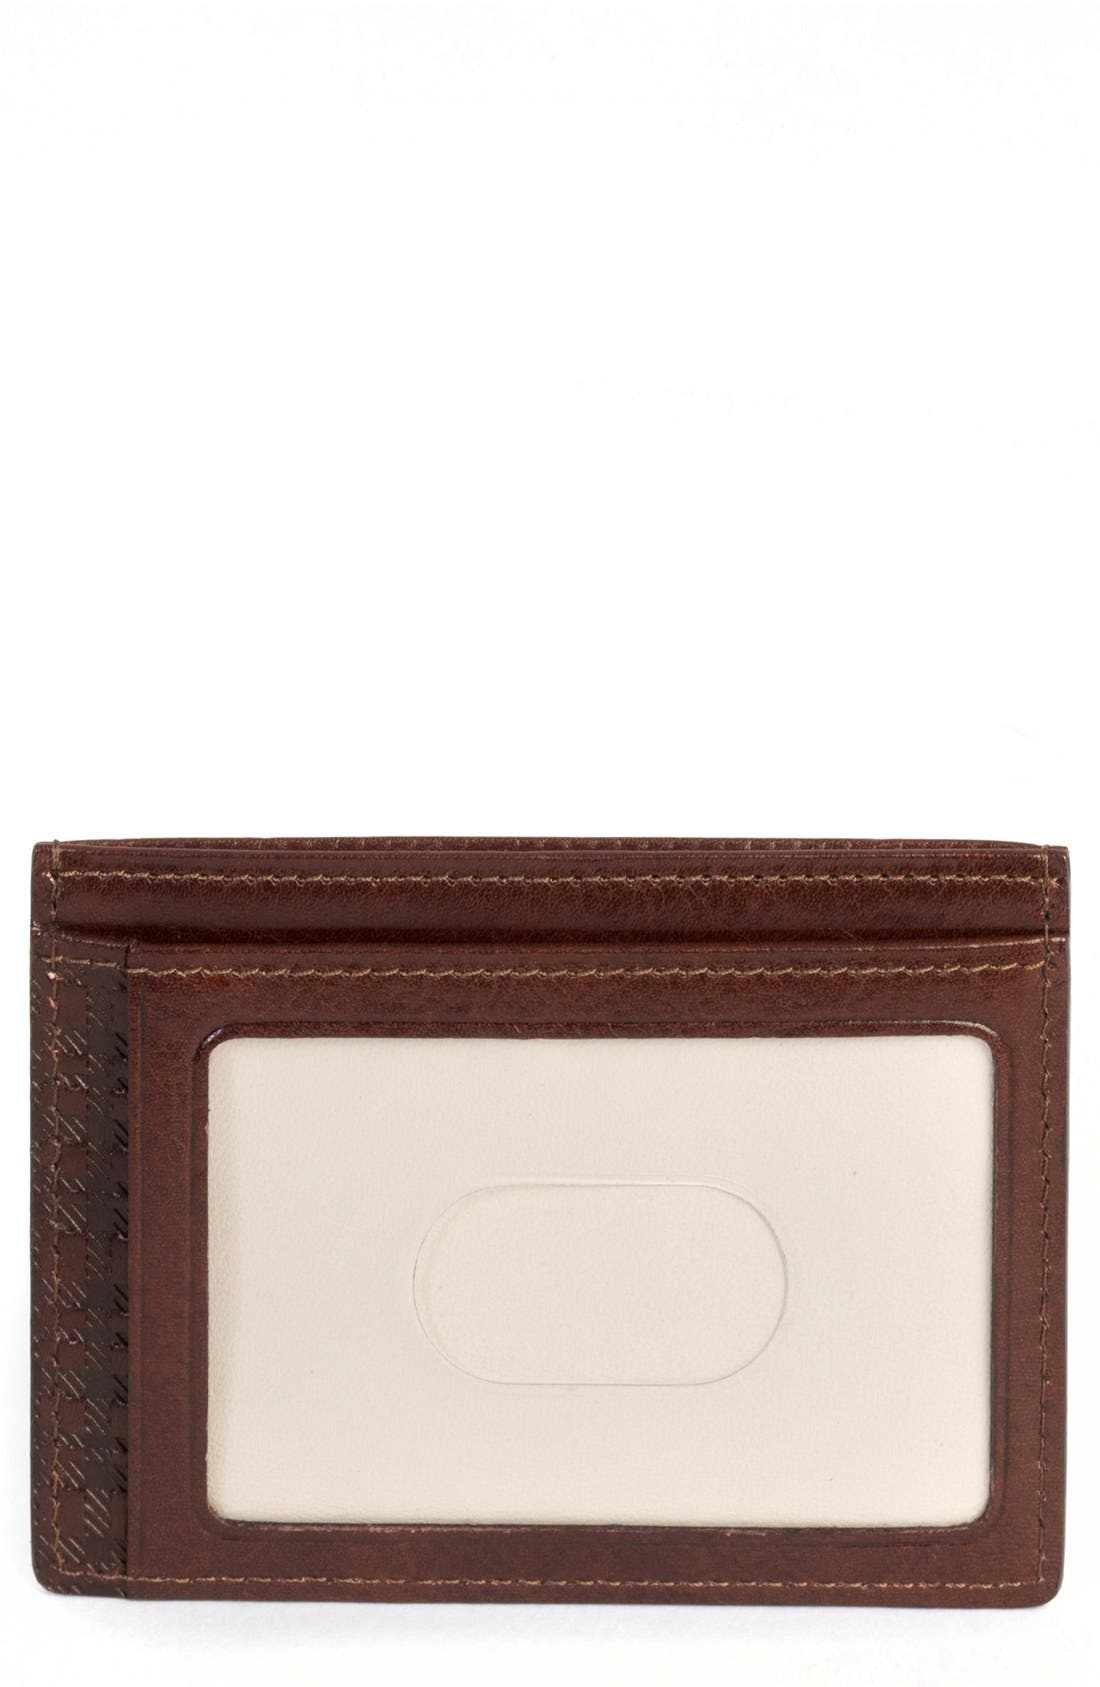 'Becker' Leather Card Case,                         Main,                         color, Whiskey